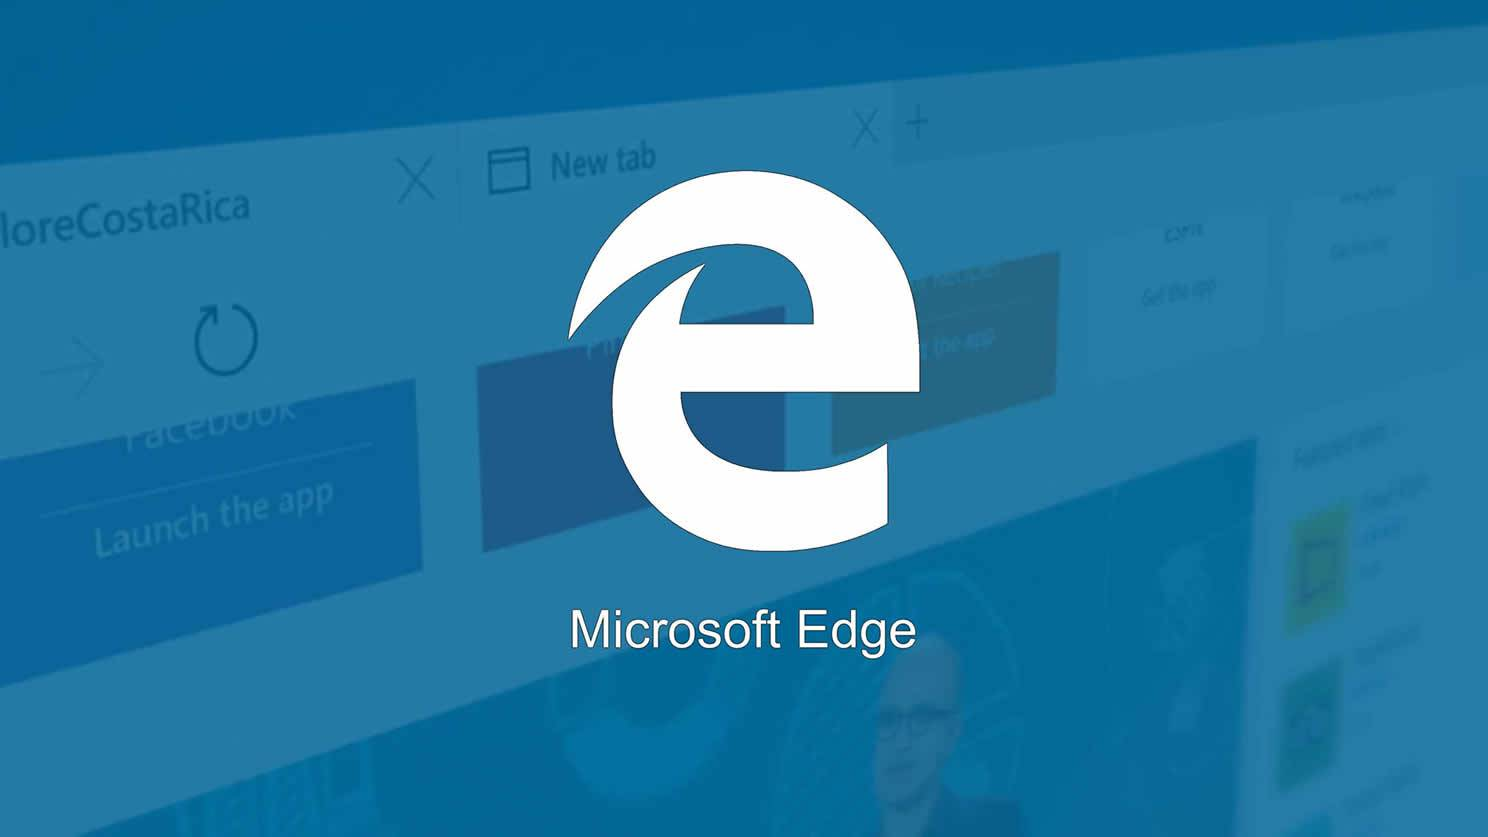 microsoft edge is a newly introduced web browser launched by microsoft for windows 10 os xbox one and windows 10 mobile it is basically intended to